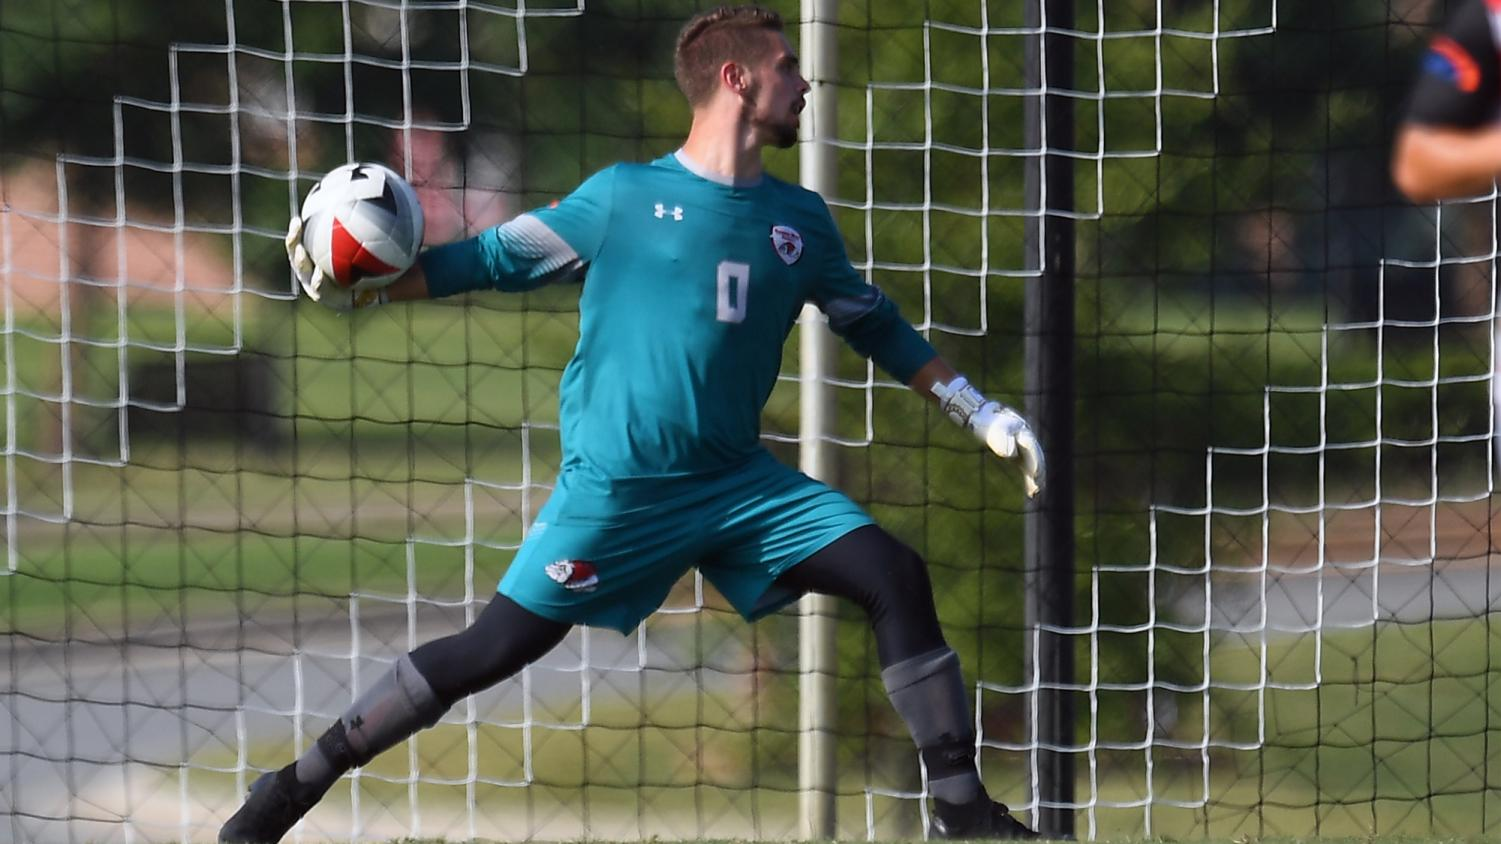 Former Gardner-Webb goalkeeper Grant Glorioso in action for the Bulldogs. Boiling Springs, N.C. (GWUPhotos.com/Tim Cowie)